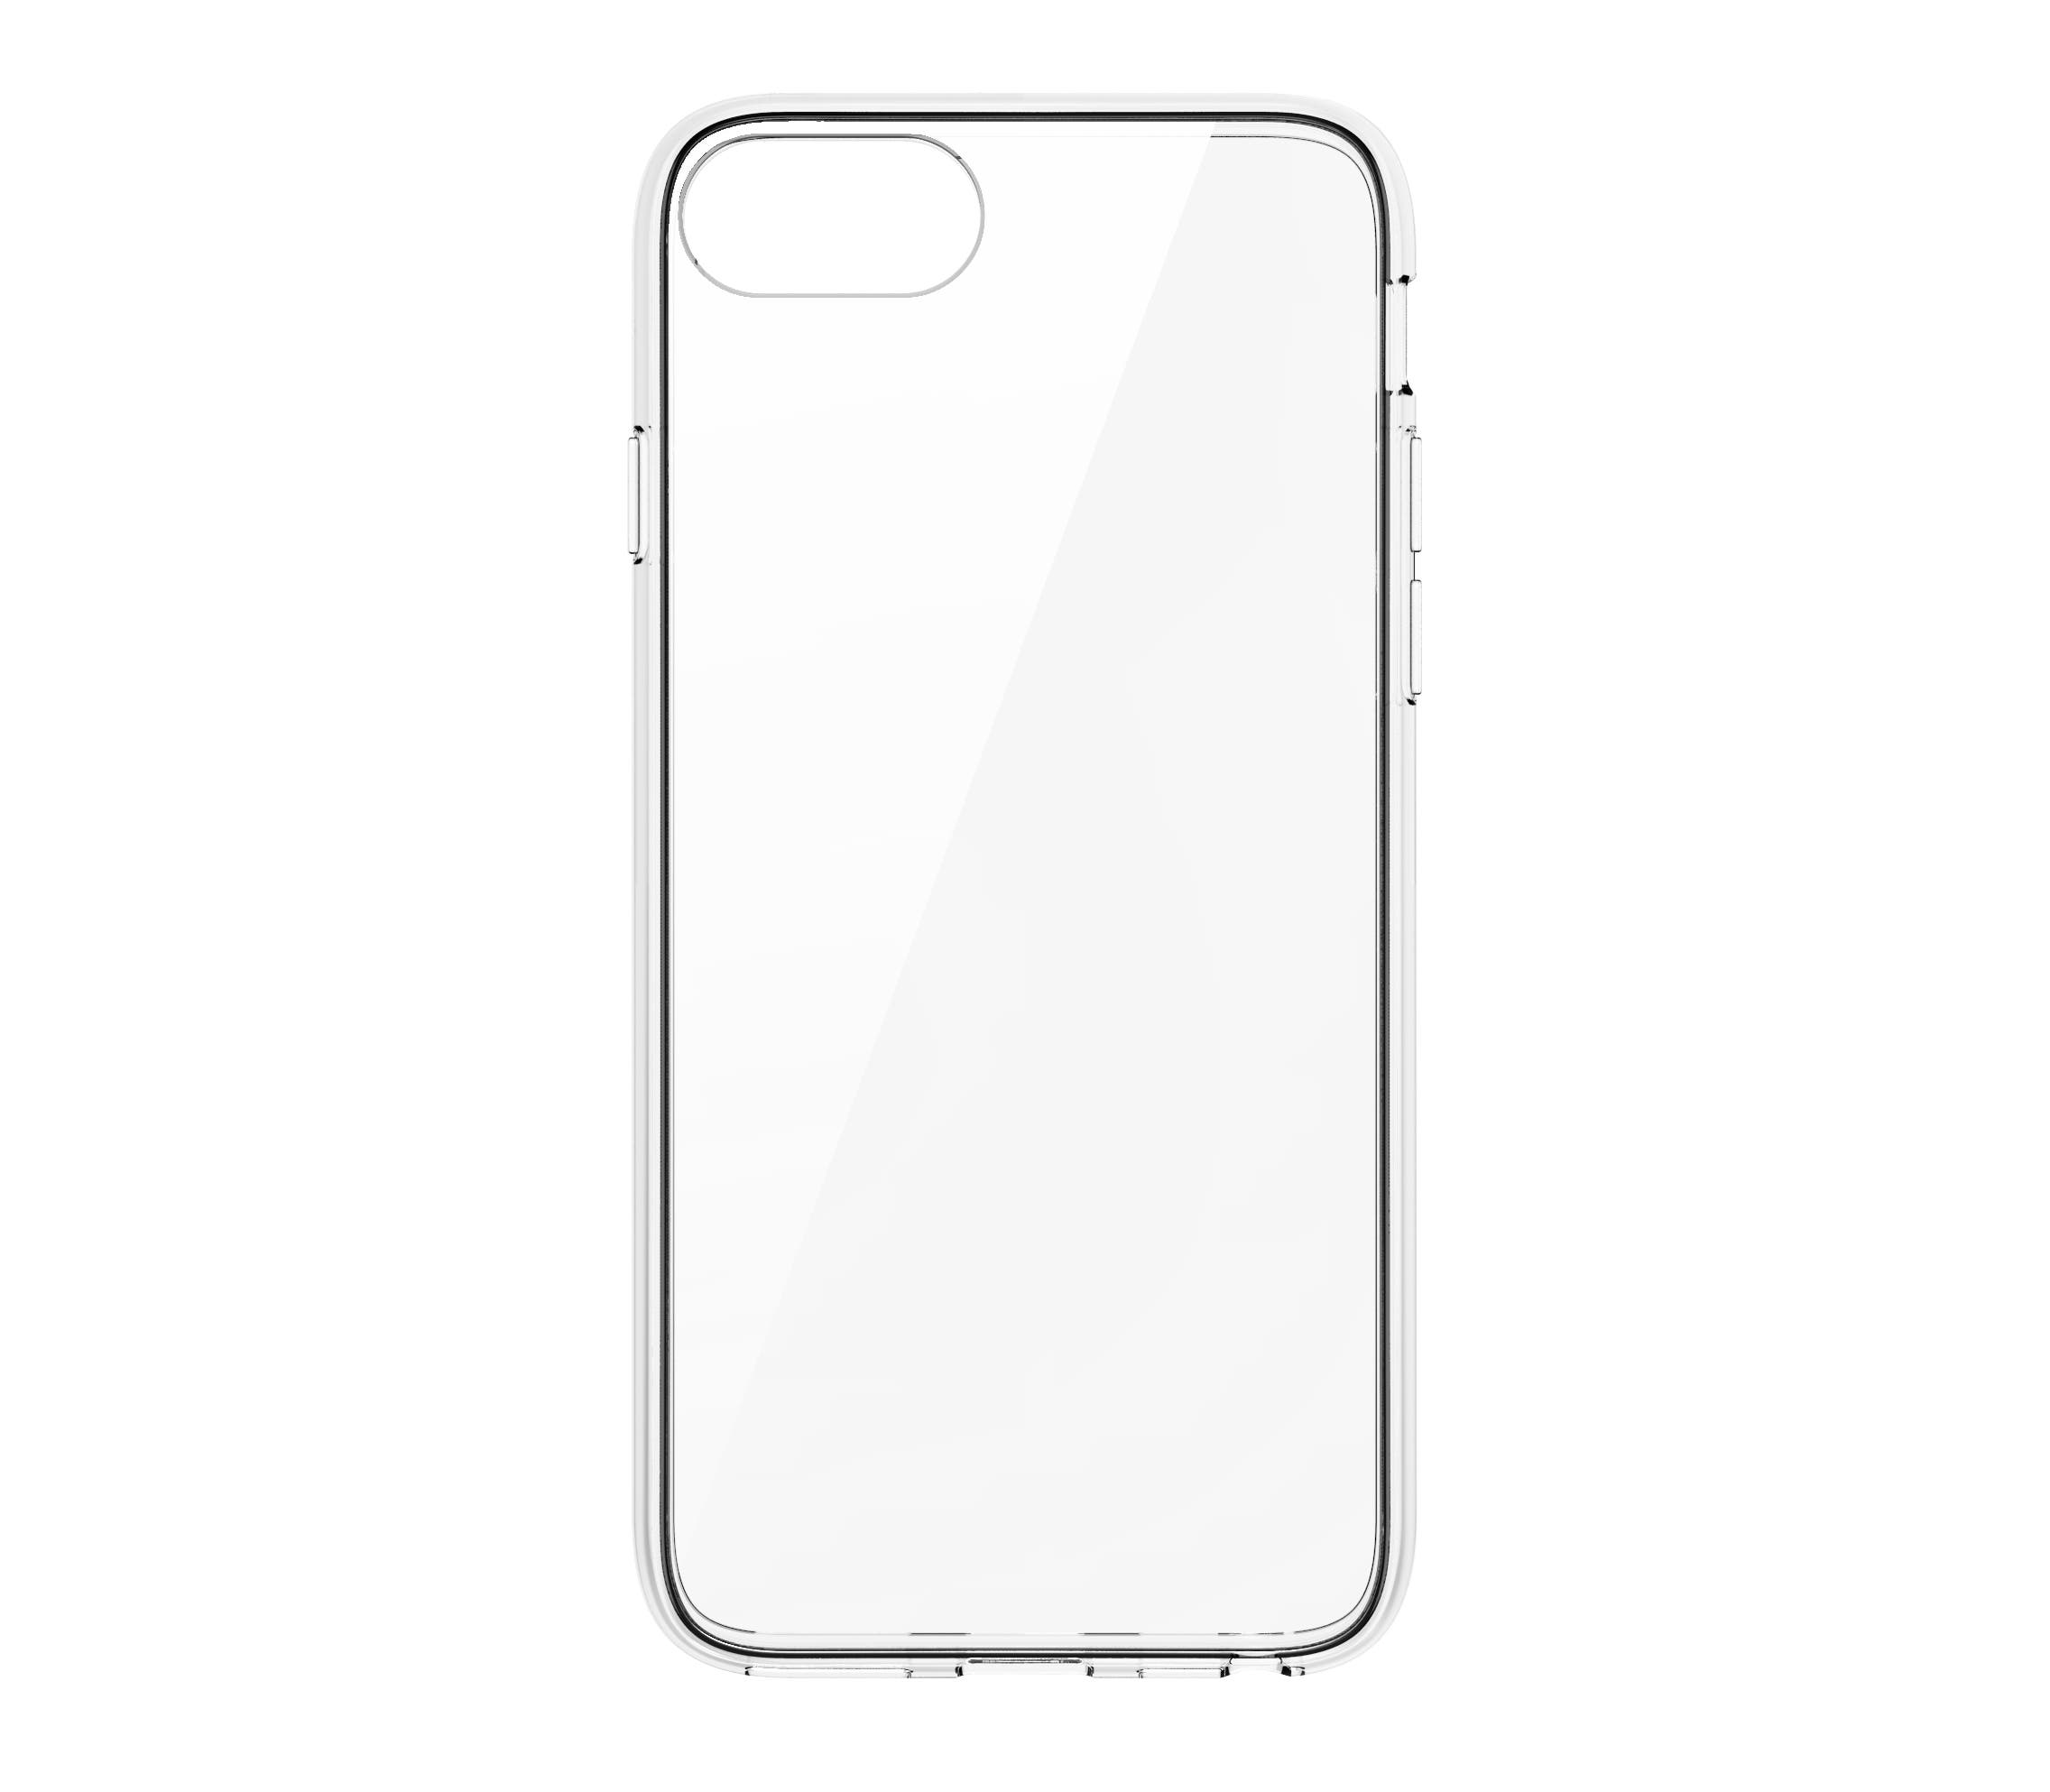 QDOS Hybrid Case for iPhone SE / 8 / 7 - Clear